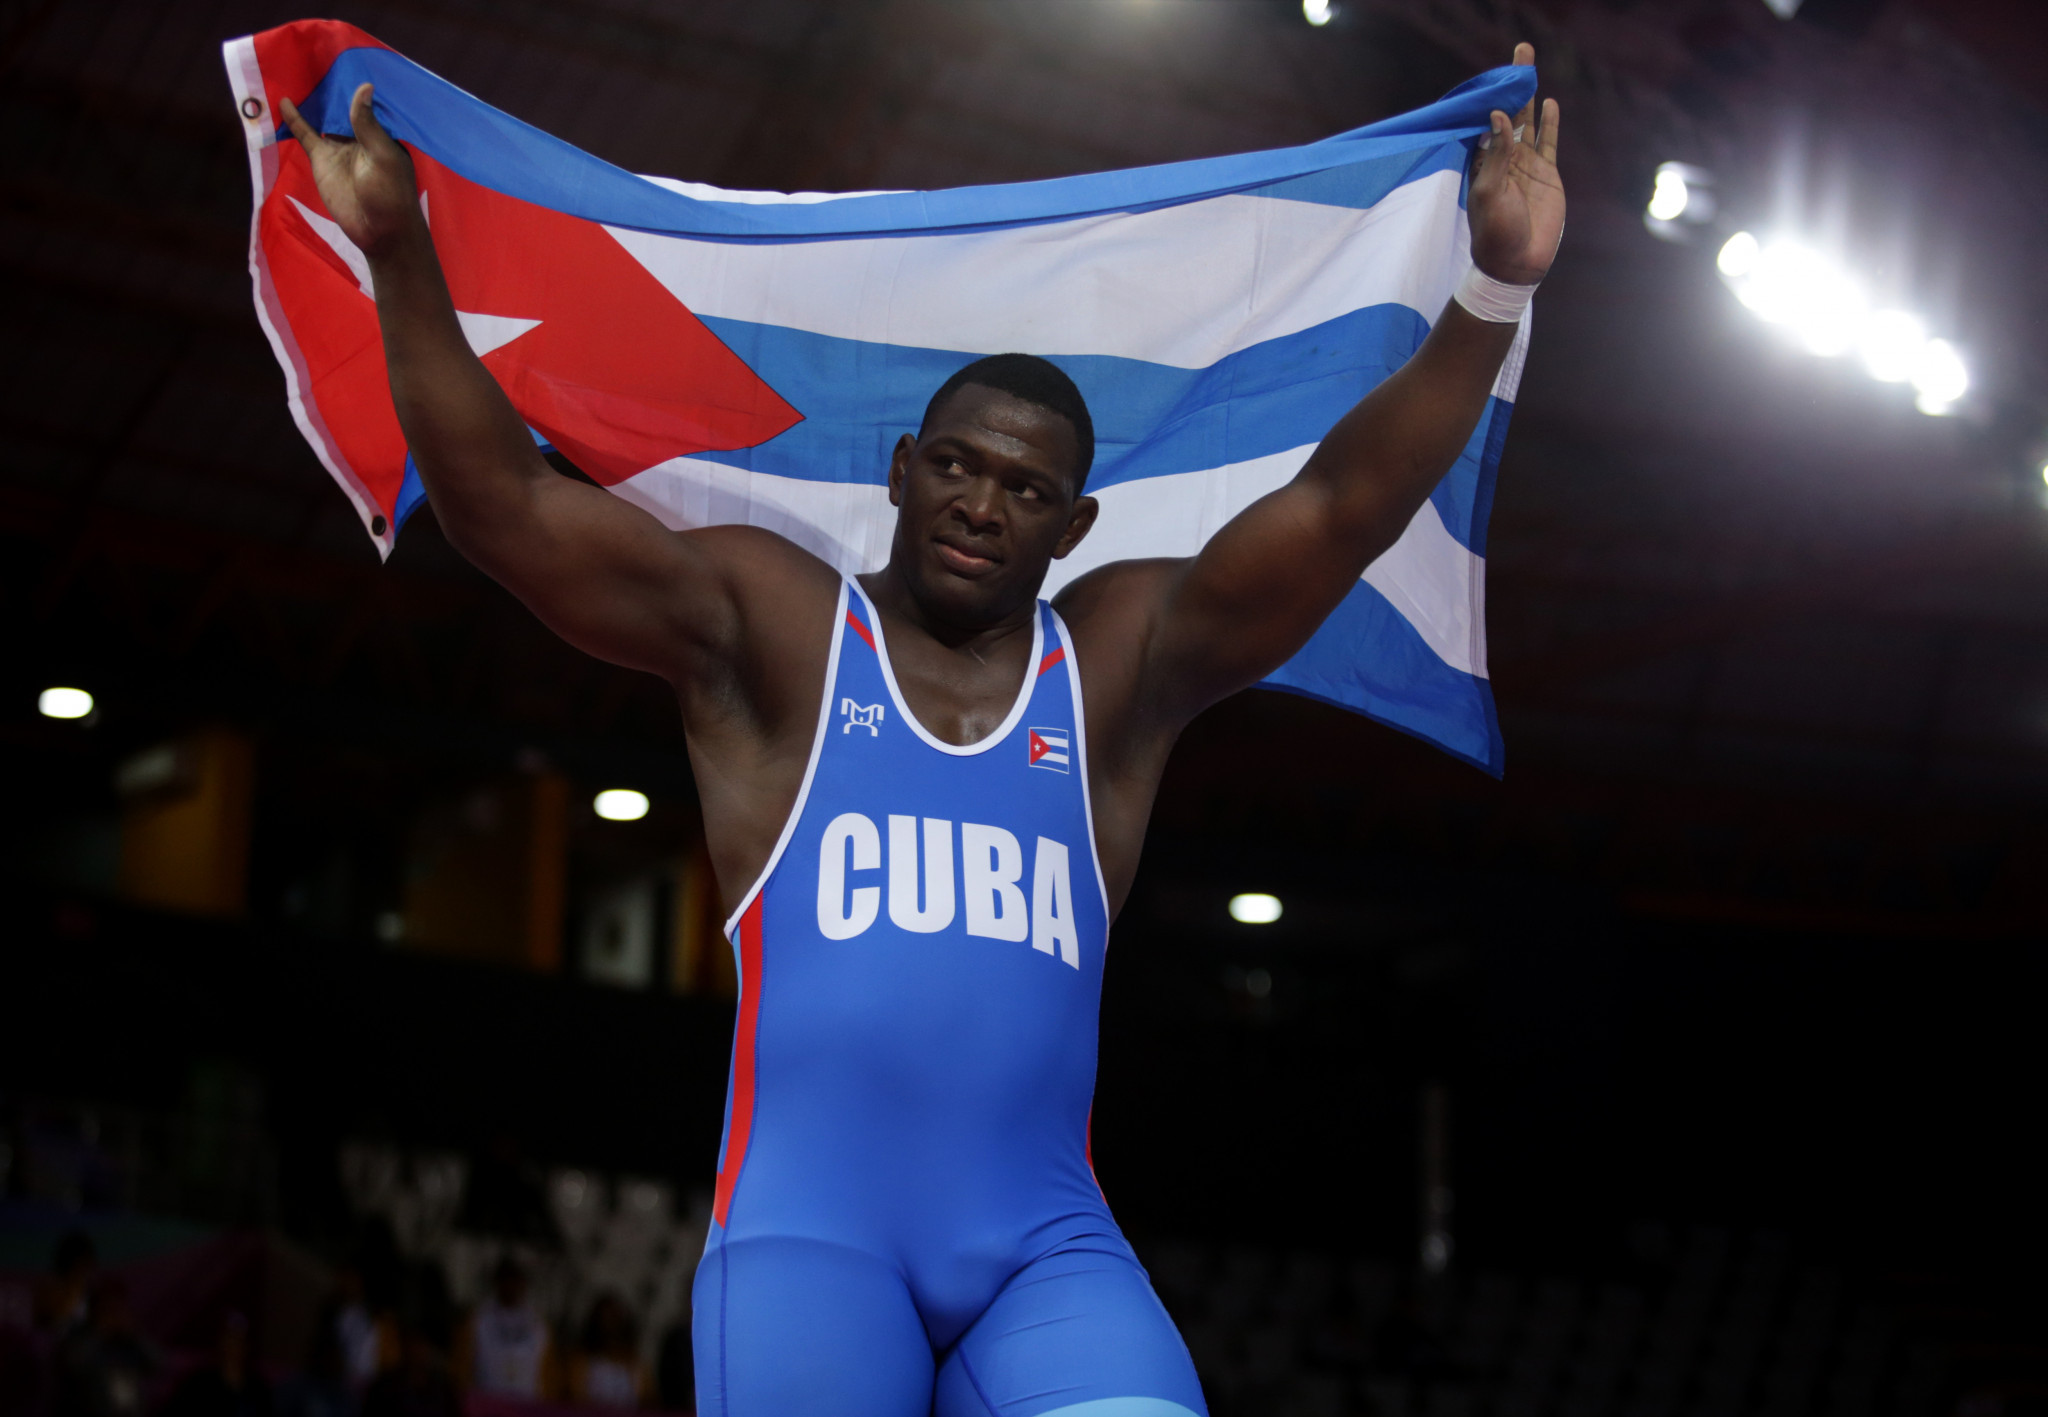 Cuba's López chases historic fourth gold as wrestling poised to begin at Tokyo 2020